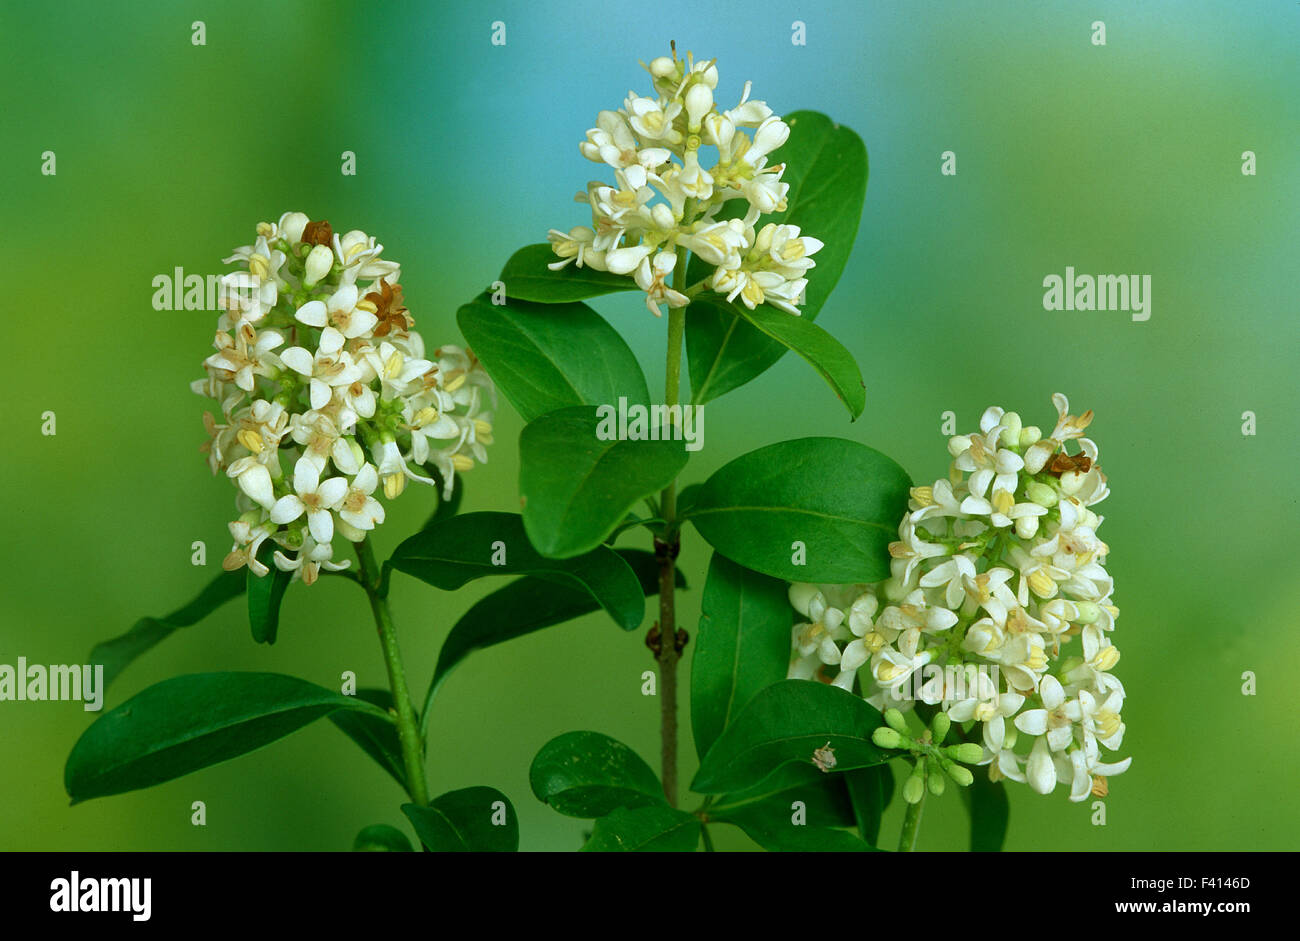 blossom; shrub; Ligustrum; Stock Photo